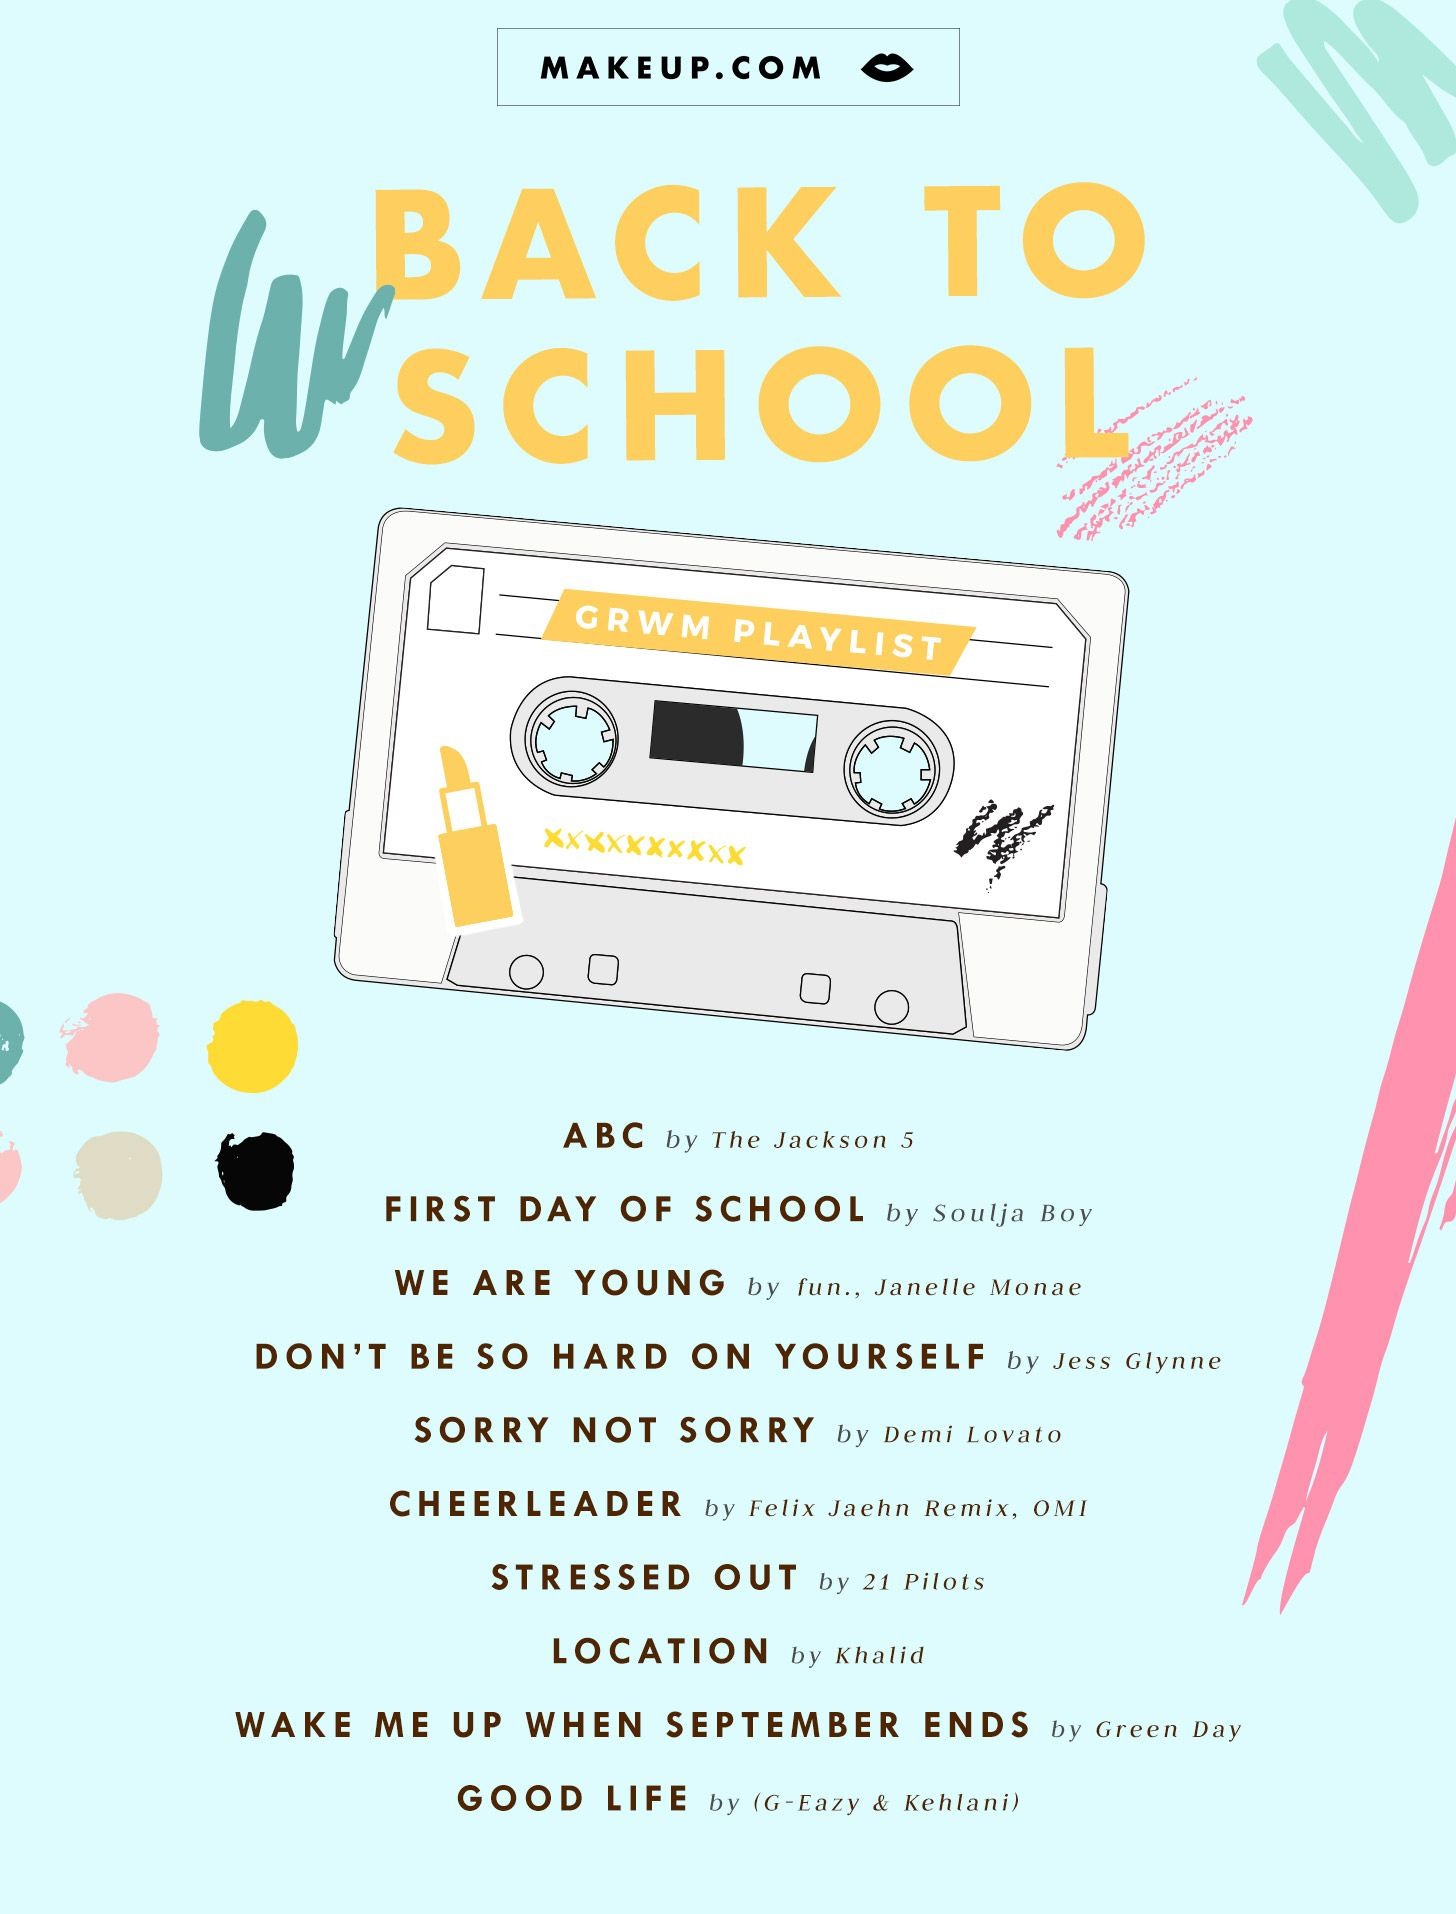 Back To School Spotify Music Playlist And Makeup Tutorial Makeup Com By L Oreal Music Playlist Spotify Music Mood Songs Super bass 2020 ziyo music. pinterest